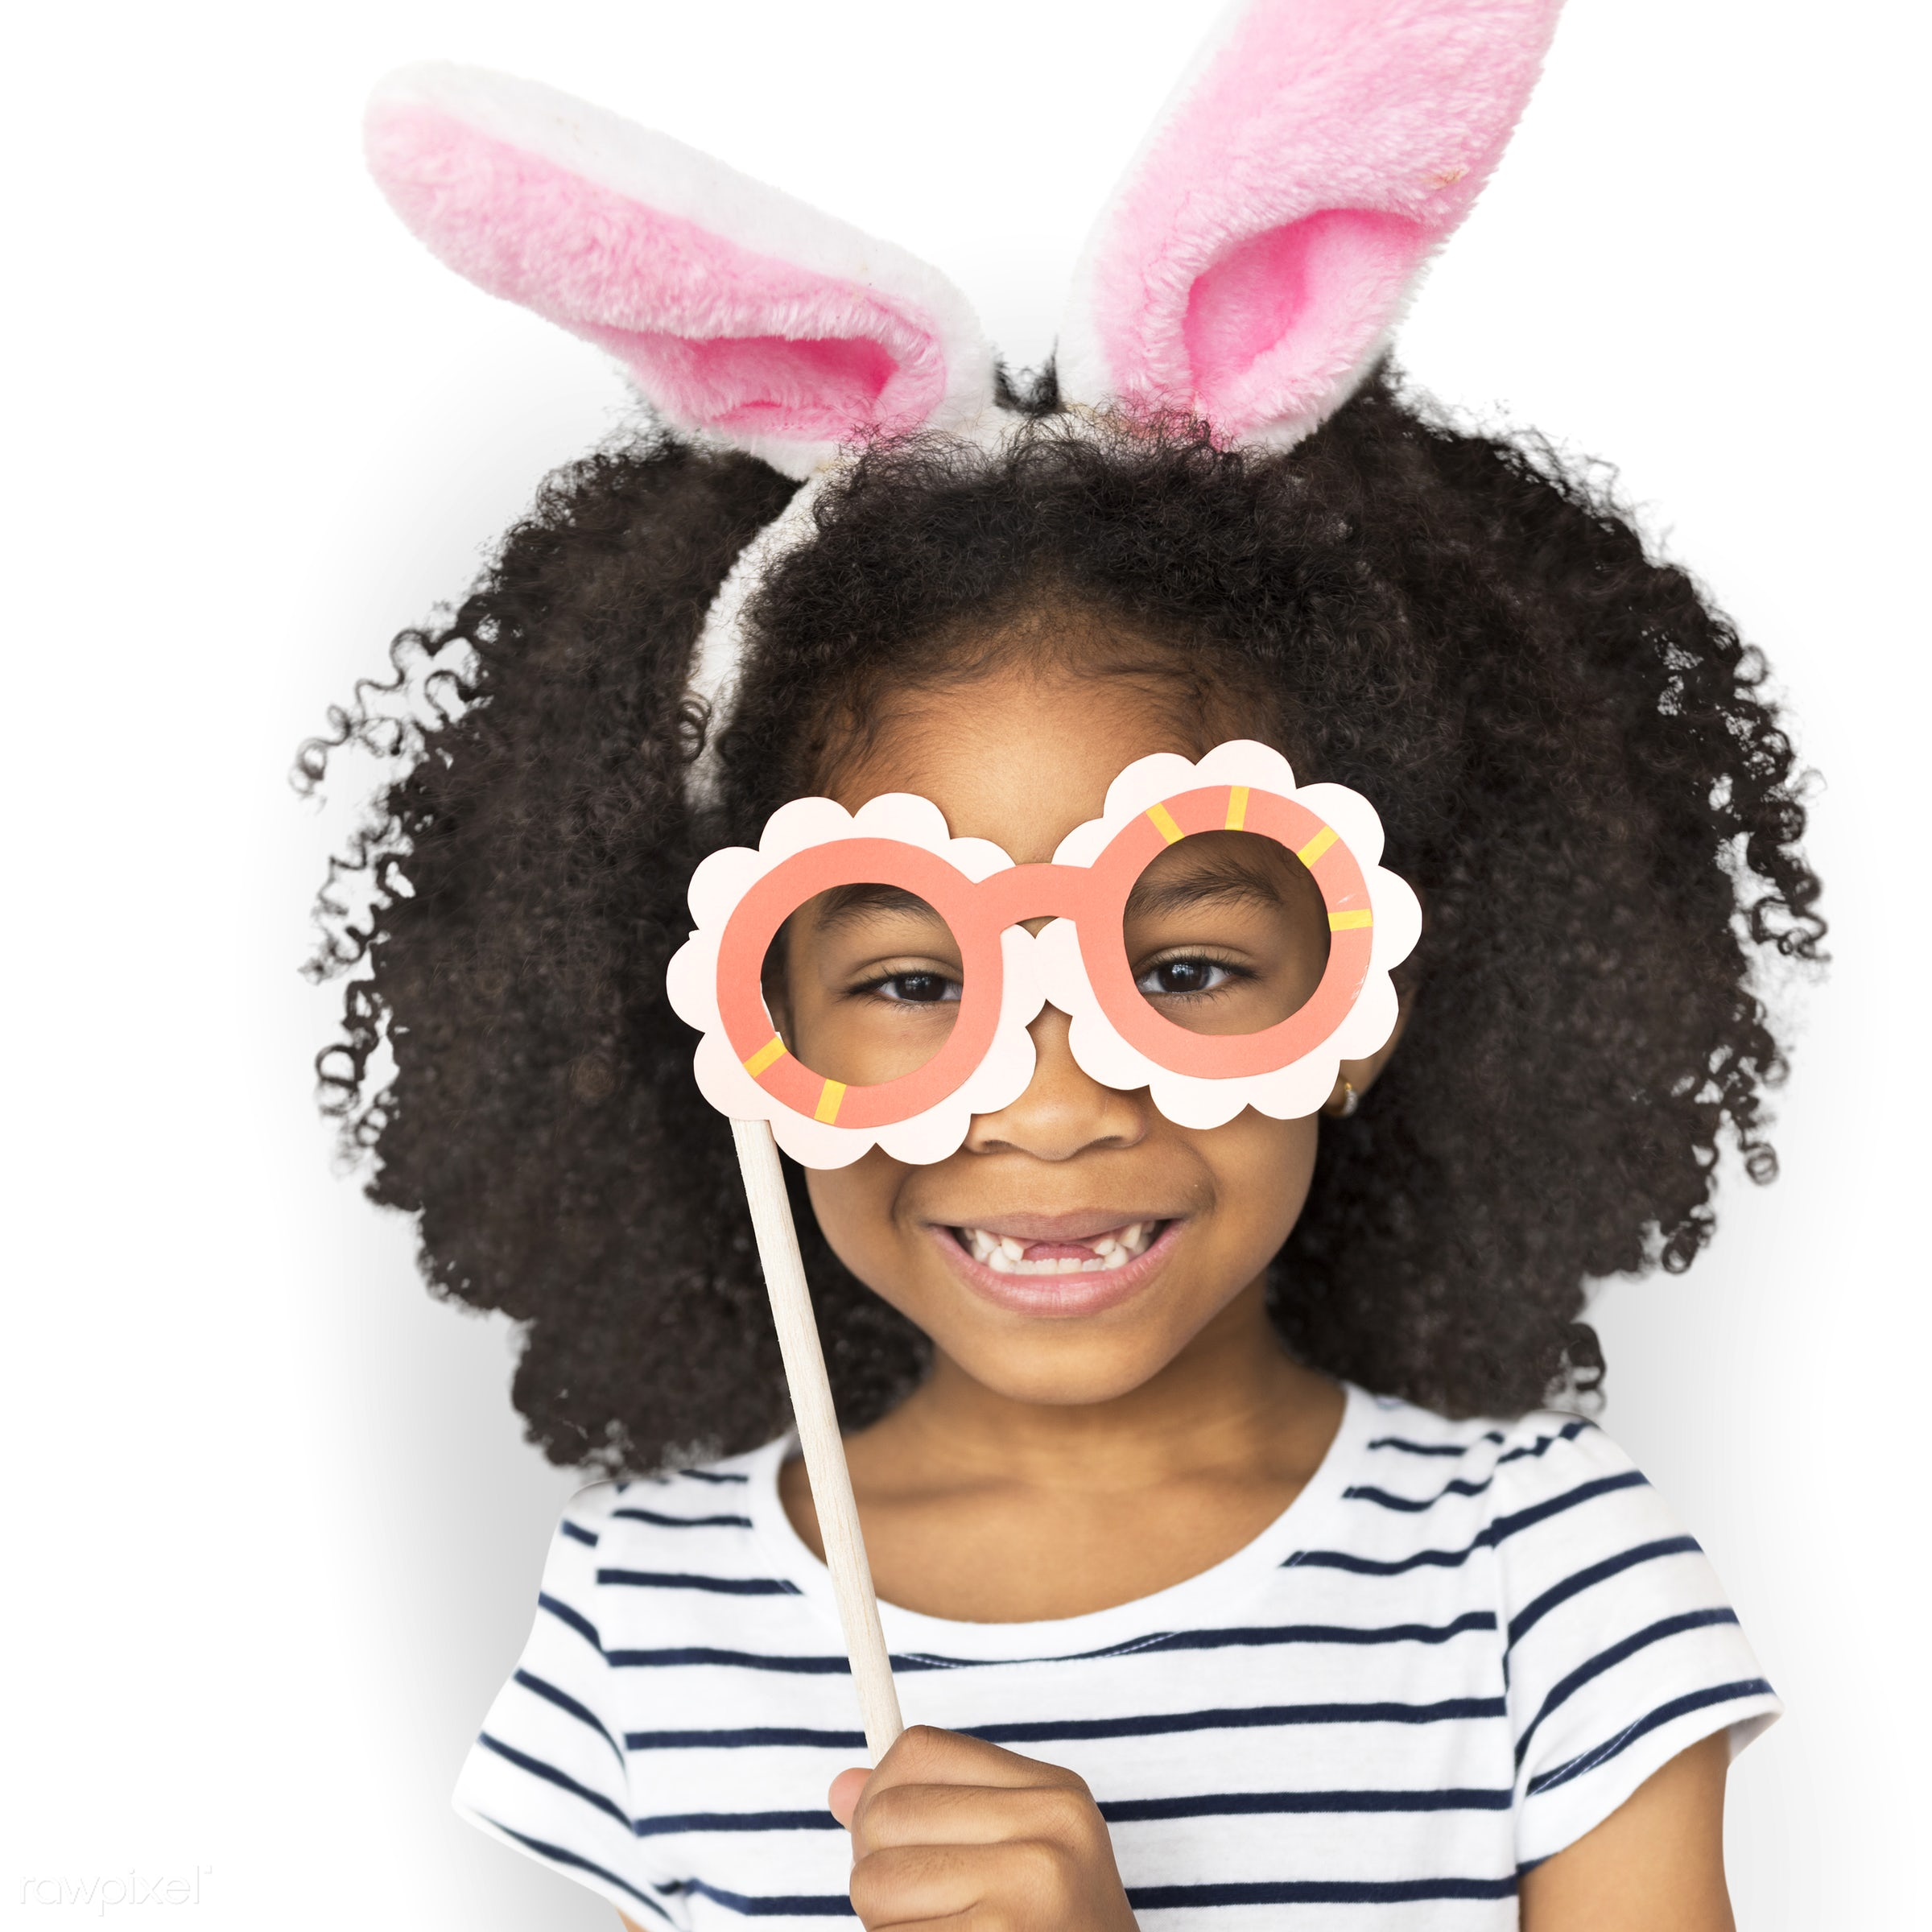 african descent, alone, black, cheerful, child, children, girl, isolated, kid, one, playful, smiling, young, youth